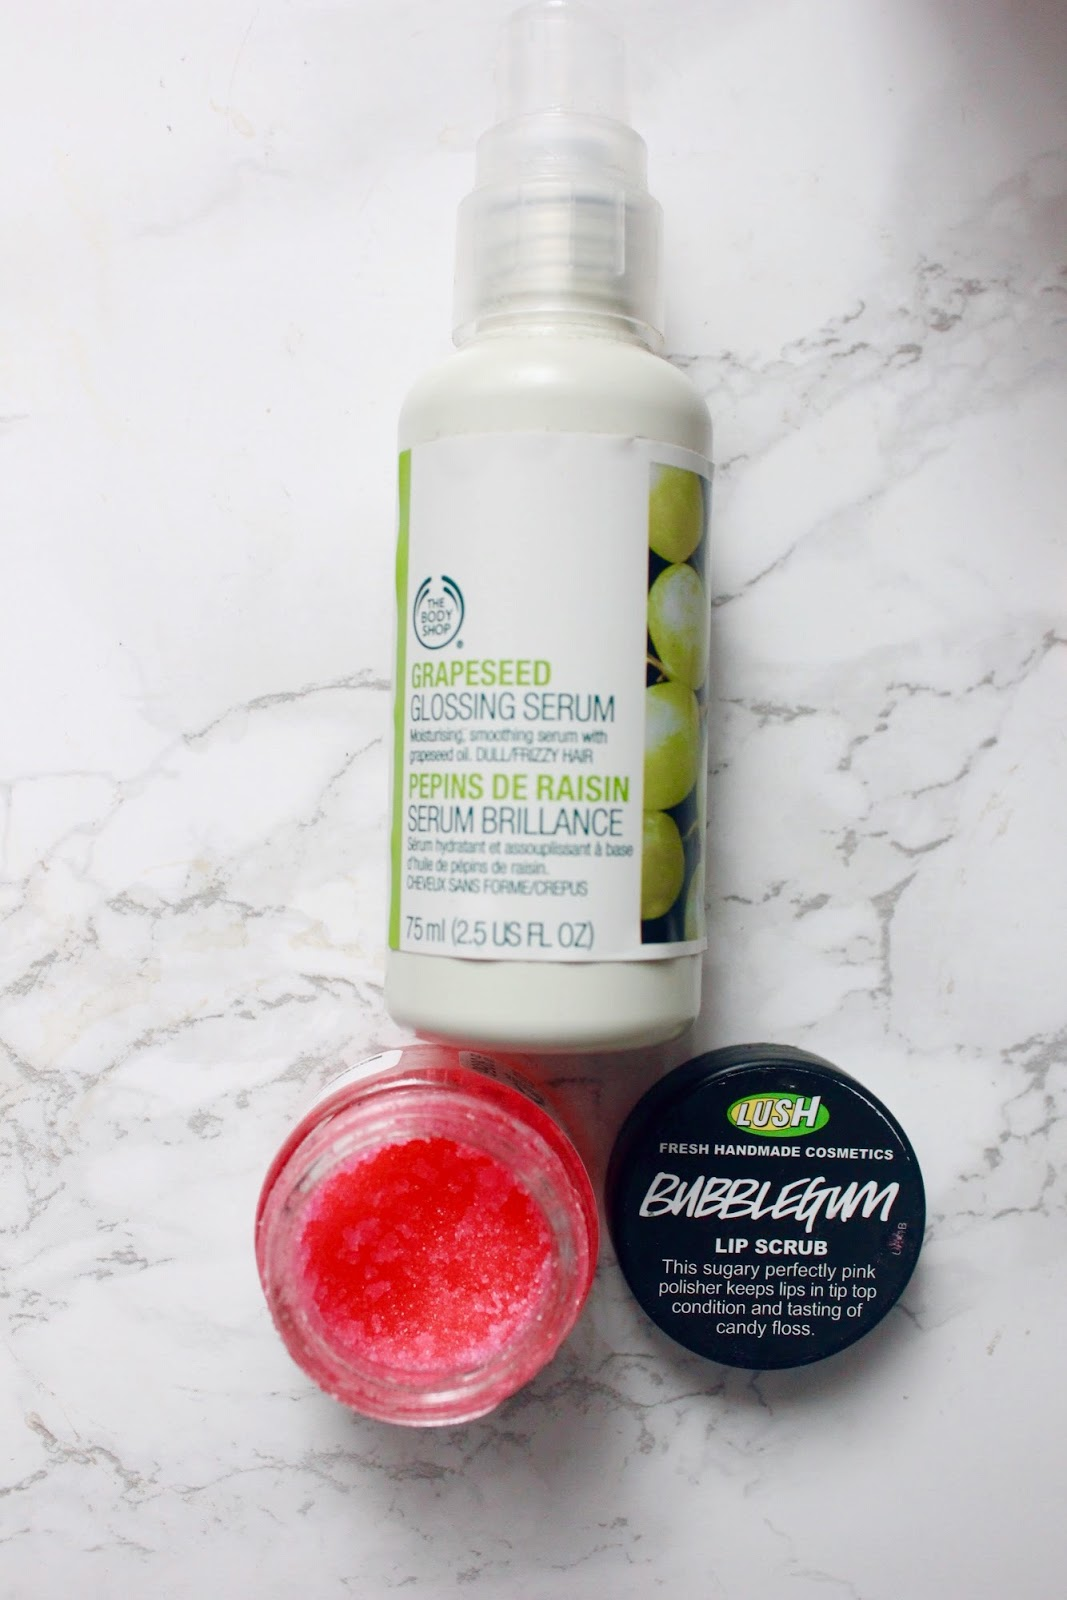 LUSH Bubblegum lip scrub - How to De-Stress for a perfect night's sleep - Stealstylist.com